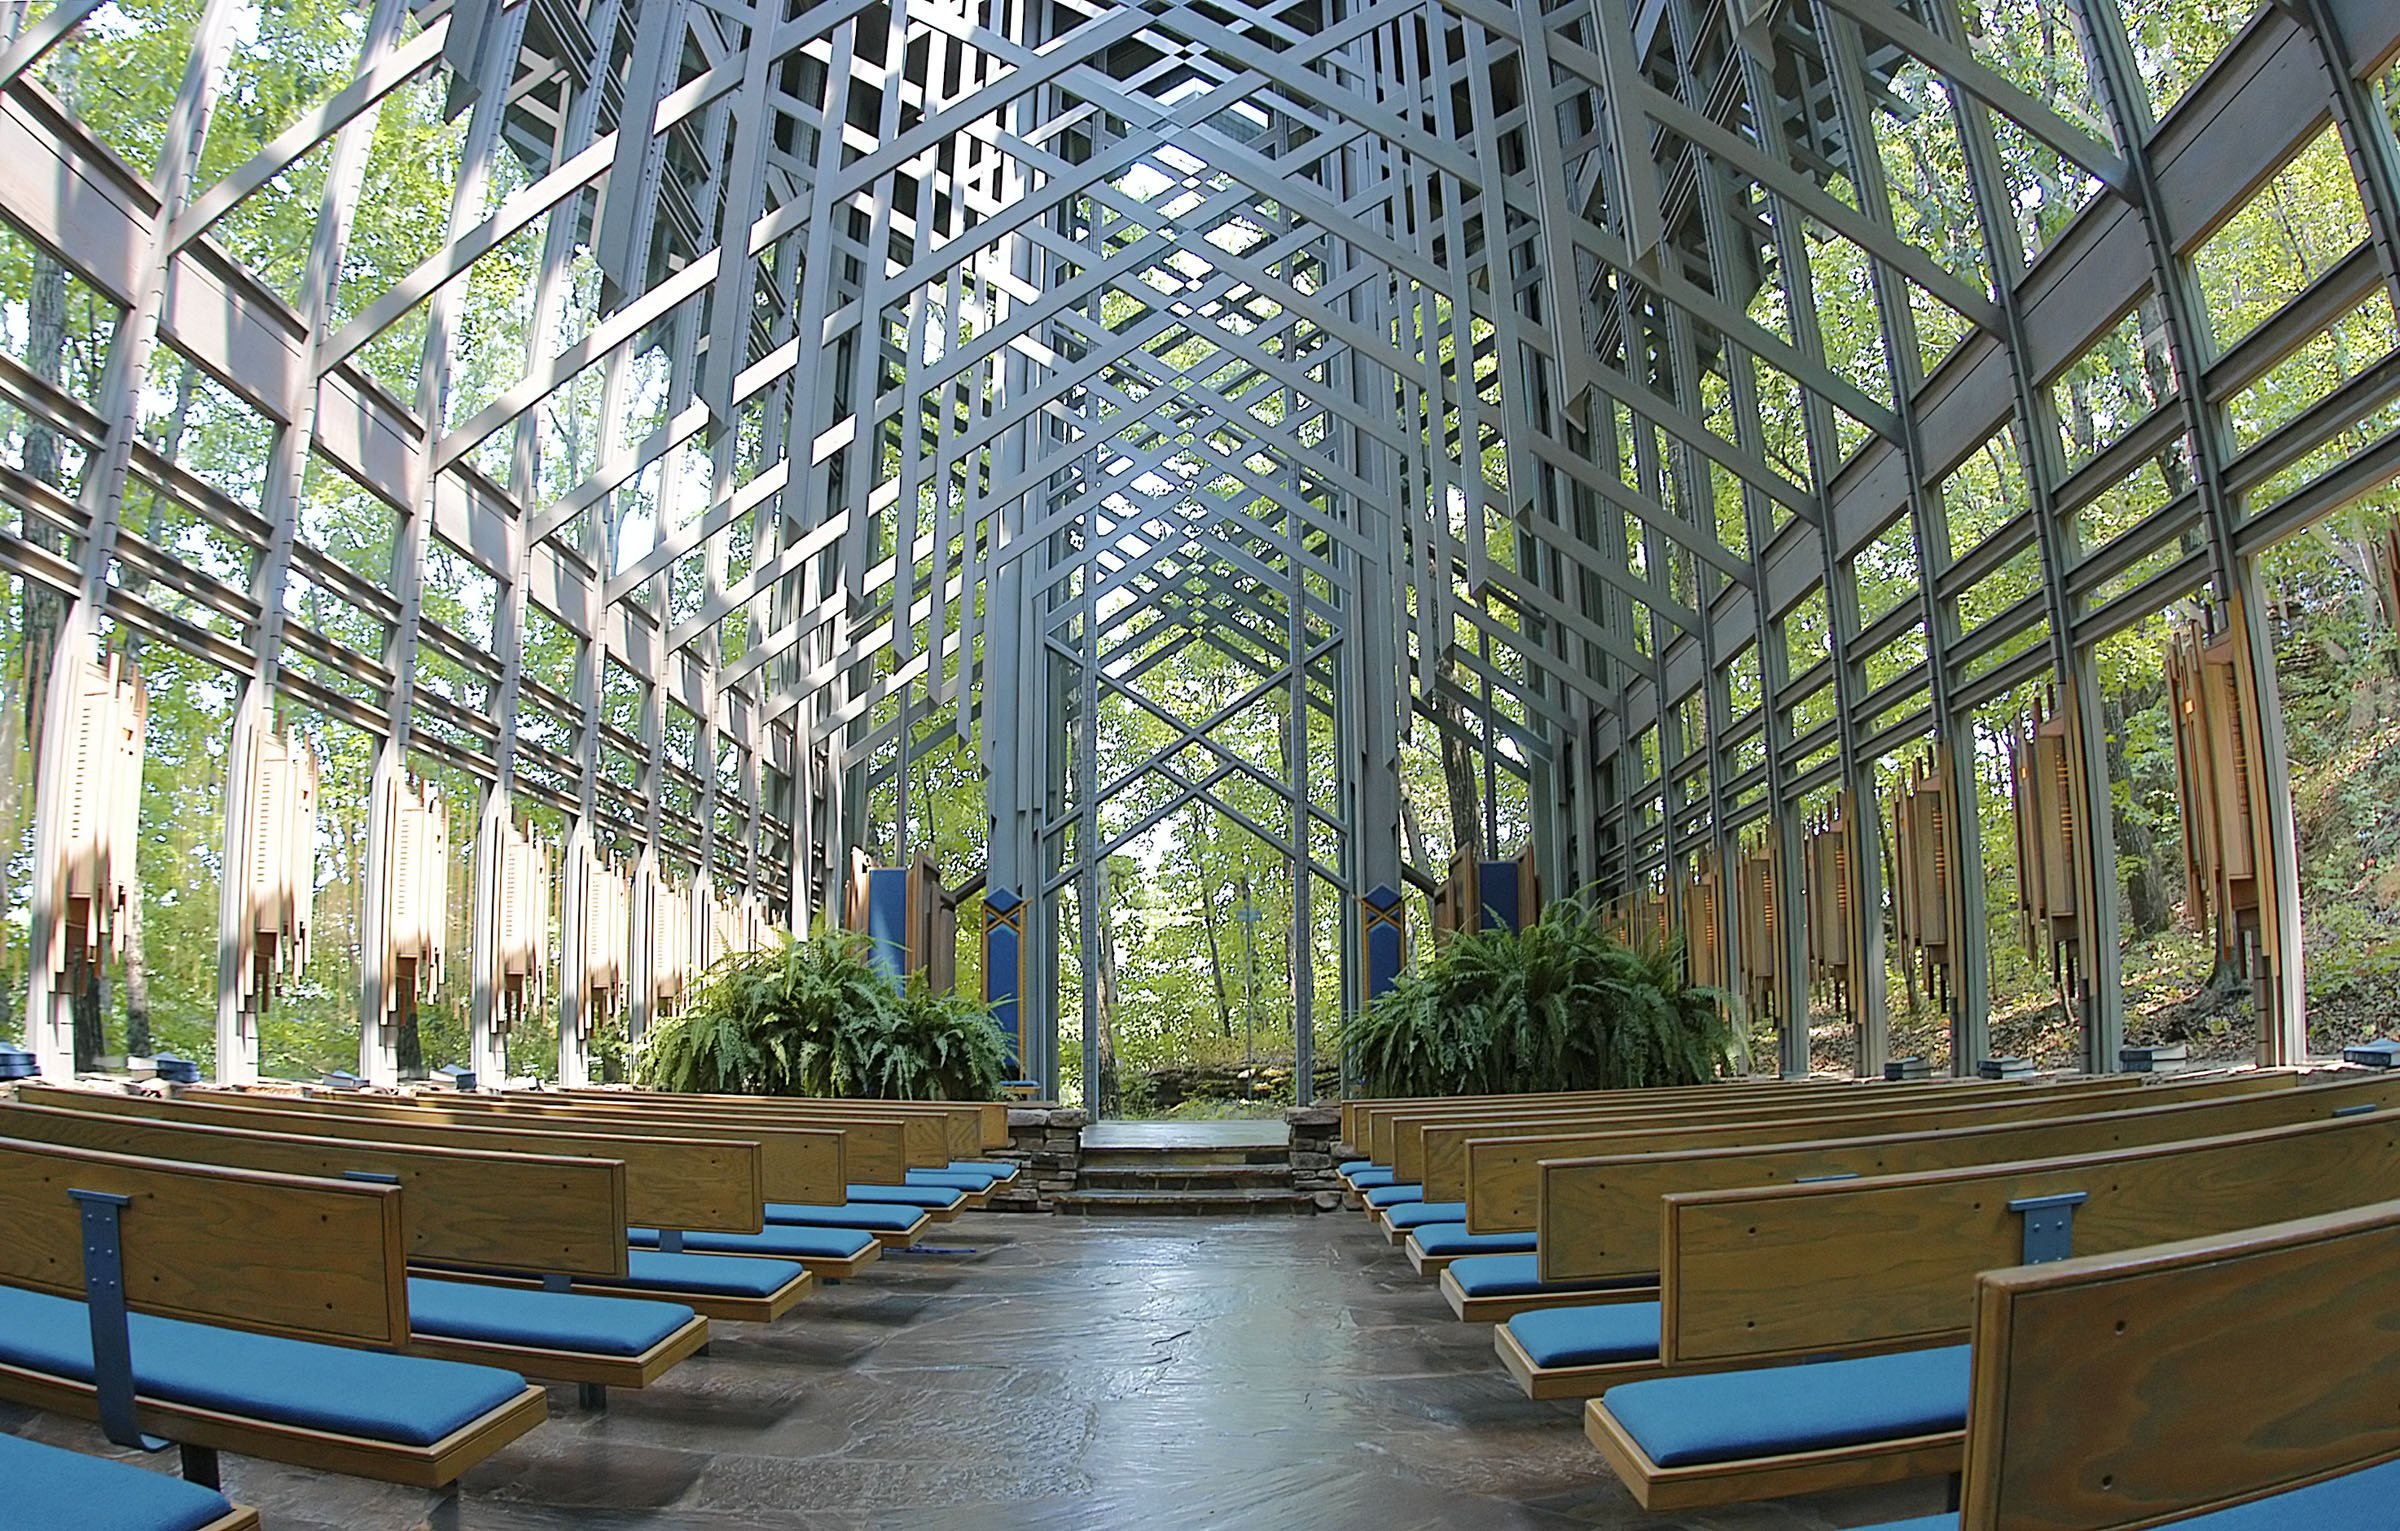 ThornCrownChapel6